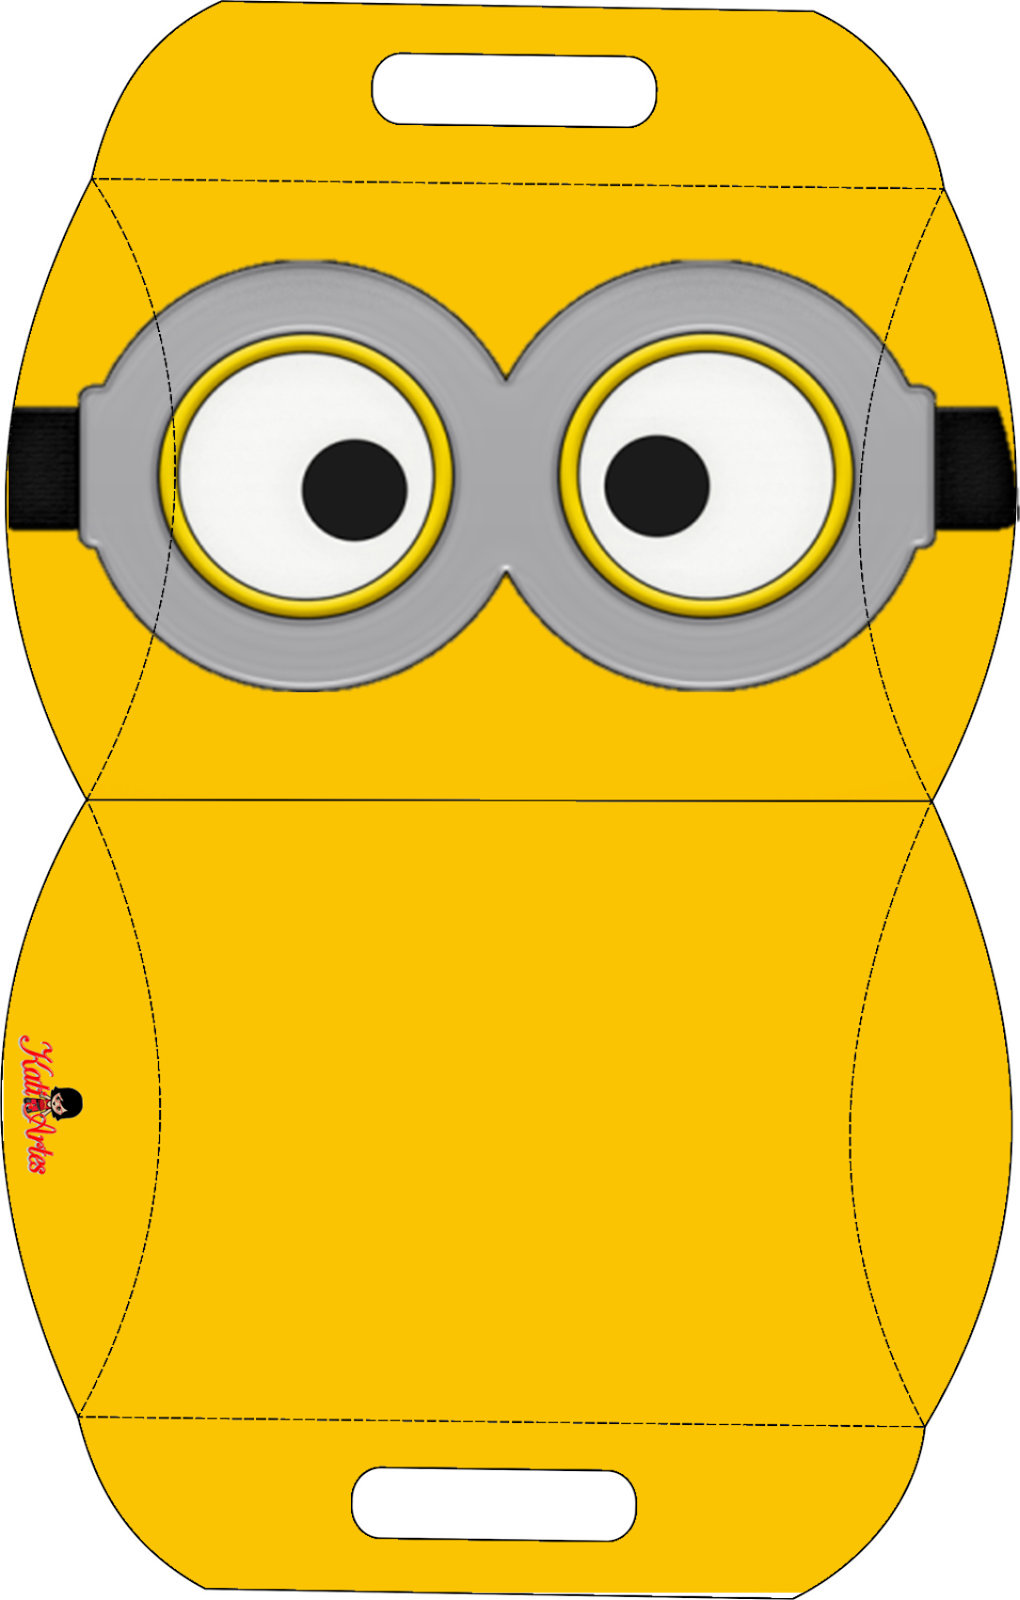 minion cut out template - Google Search | Cards | Pinterest | Minions ...